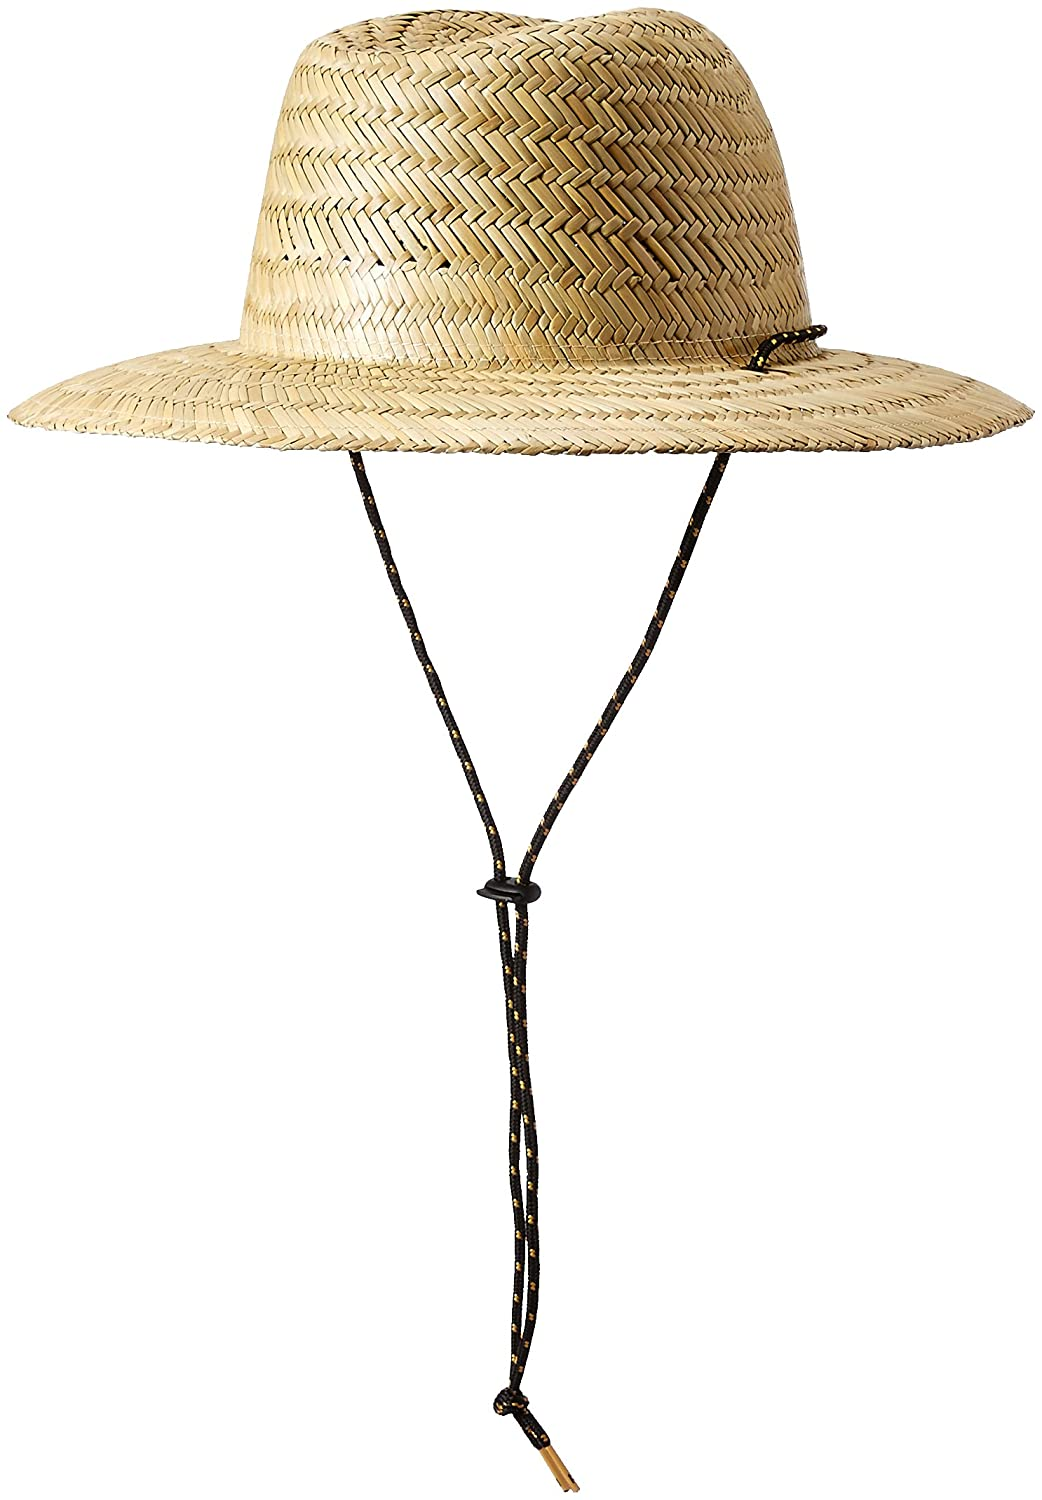 3c4b87083fd Billabong Nomad Hat Billabong Men s Nomad Hat Natural ONE MAHWNBNO larger  image